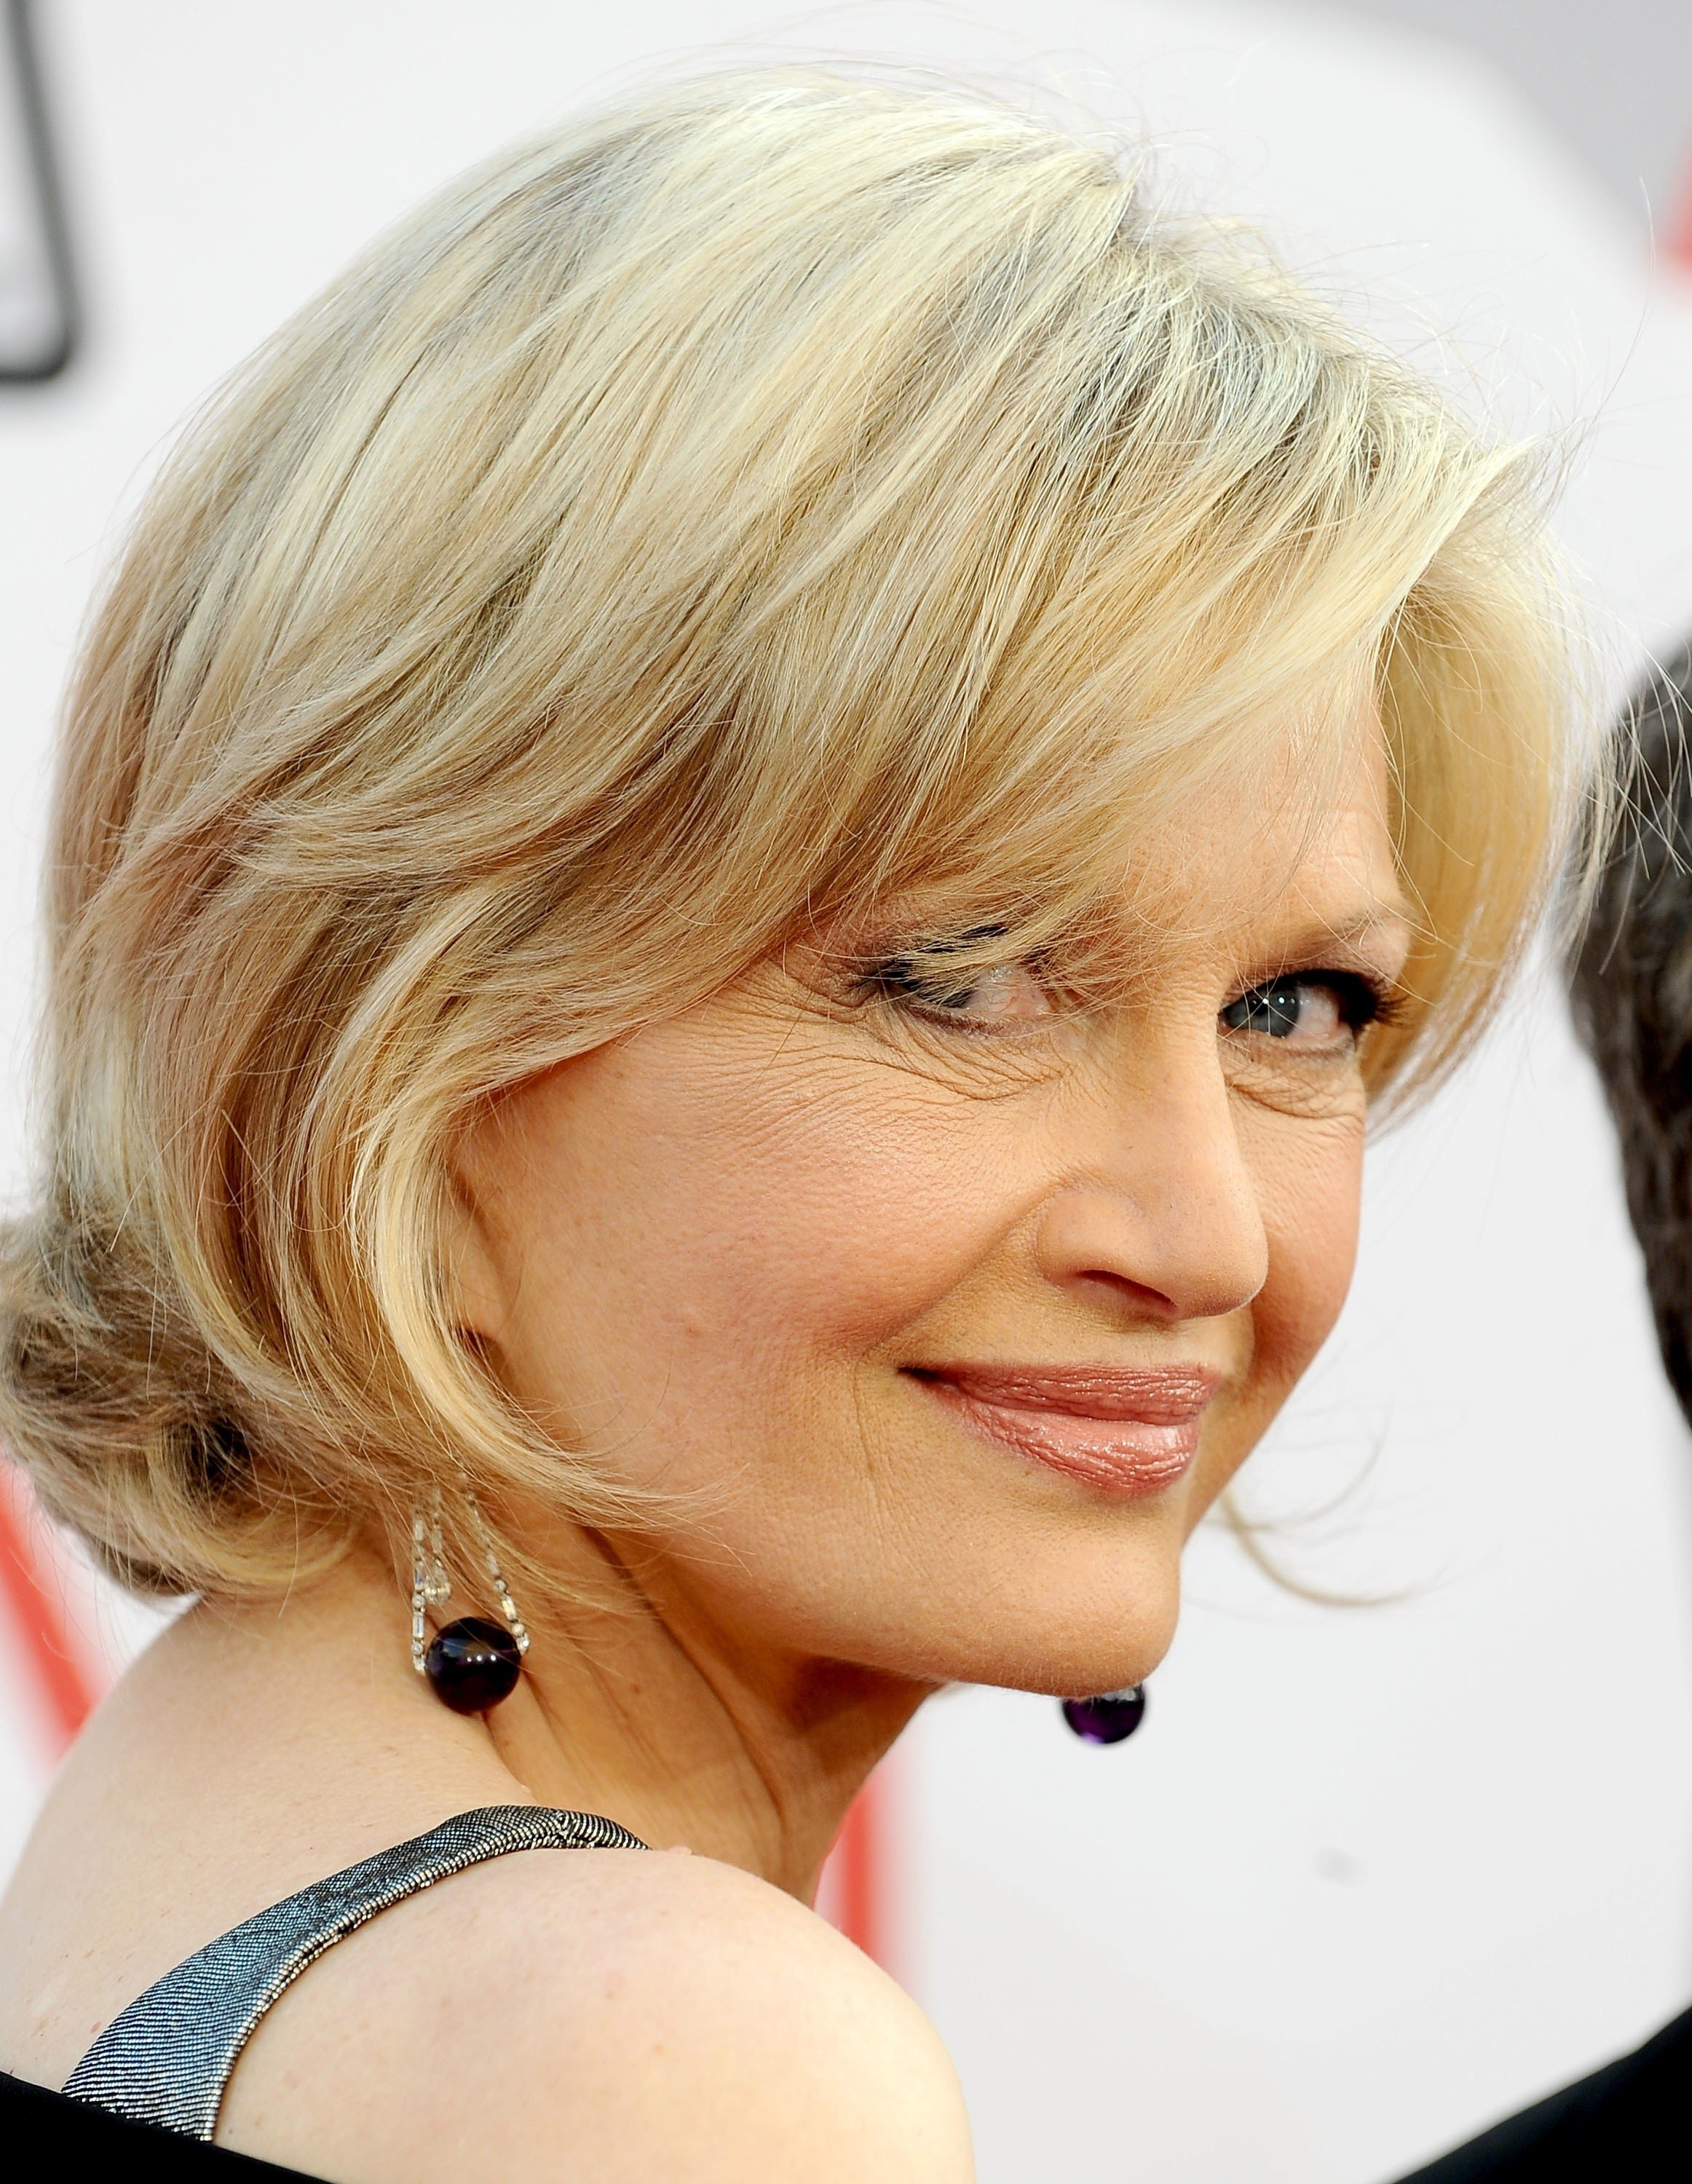 The Best 60 Year Old Woman Hairstyles Fade Haircut Pictures